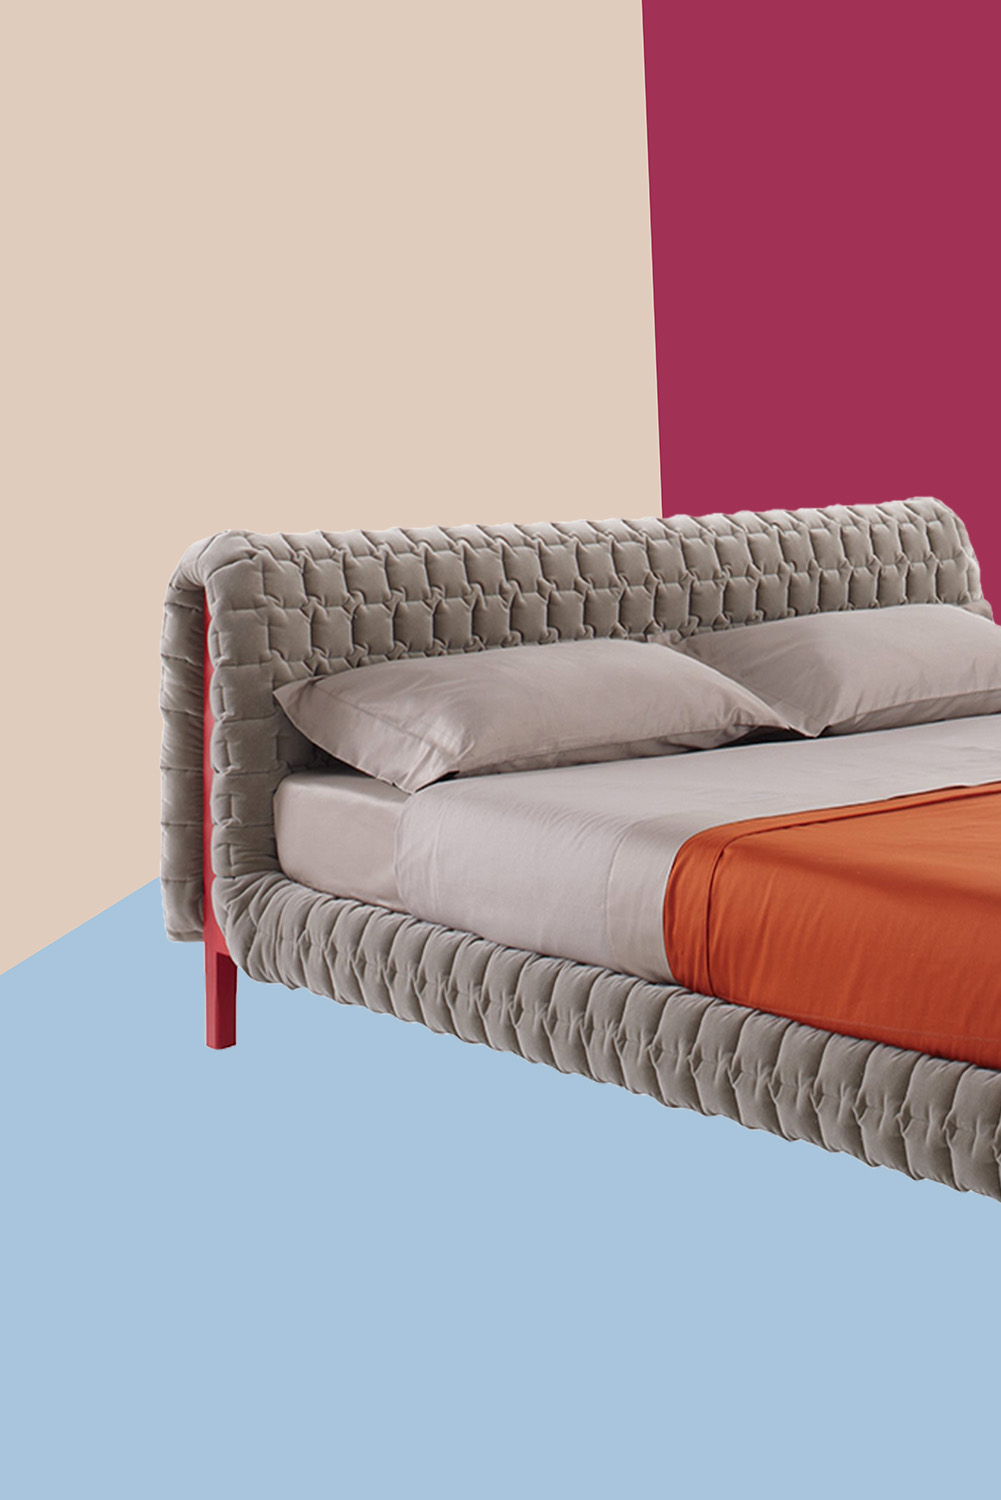 Ligne Roset  Ruch    4 560  Quilted upholstery draped over a solid wood  frame makes this a unique marriage of fashion and design. The best beds  side tables  and bedroom furniture to buy right now